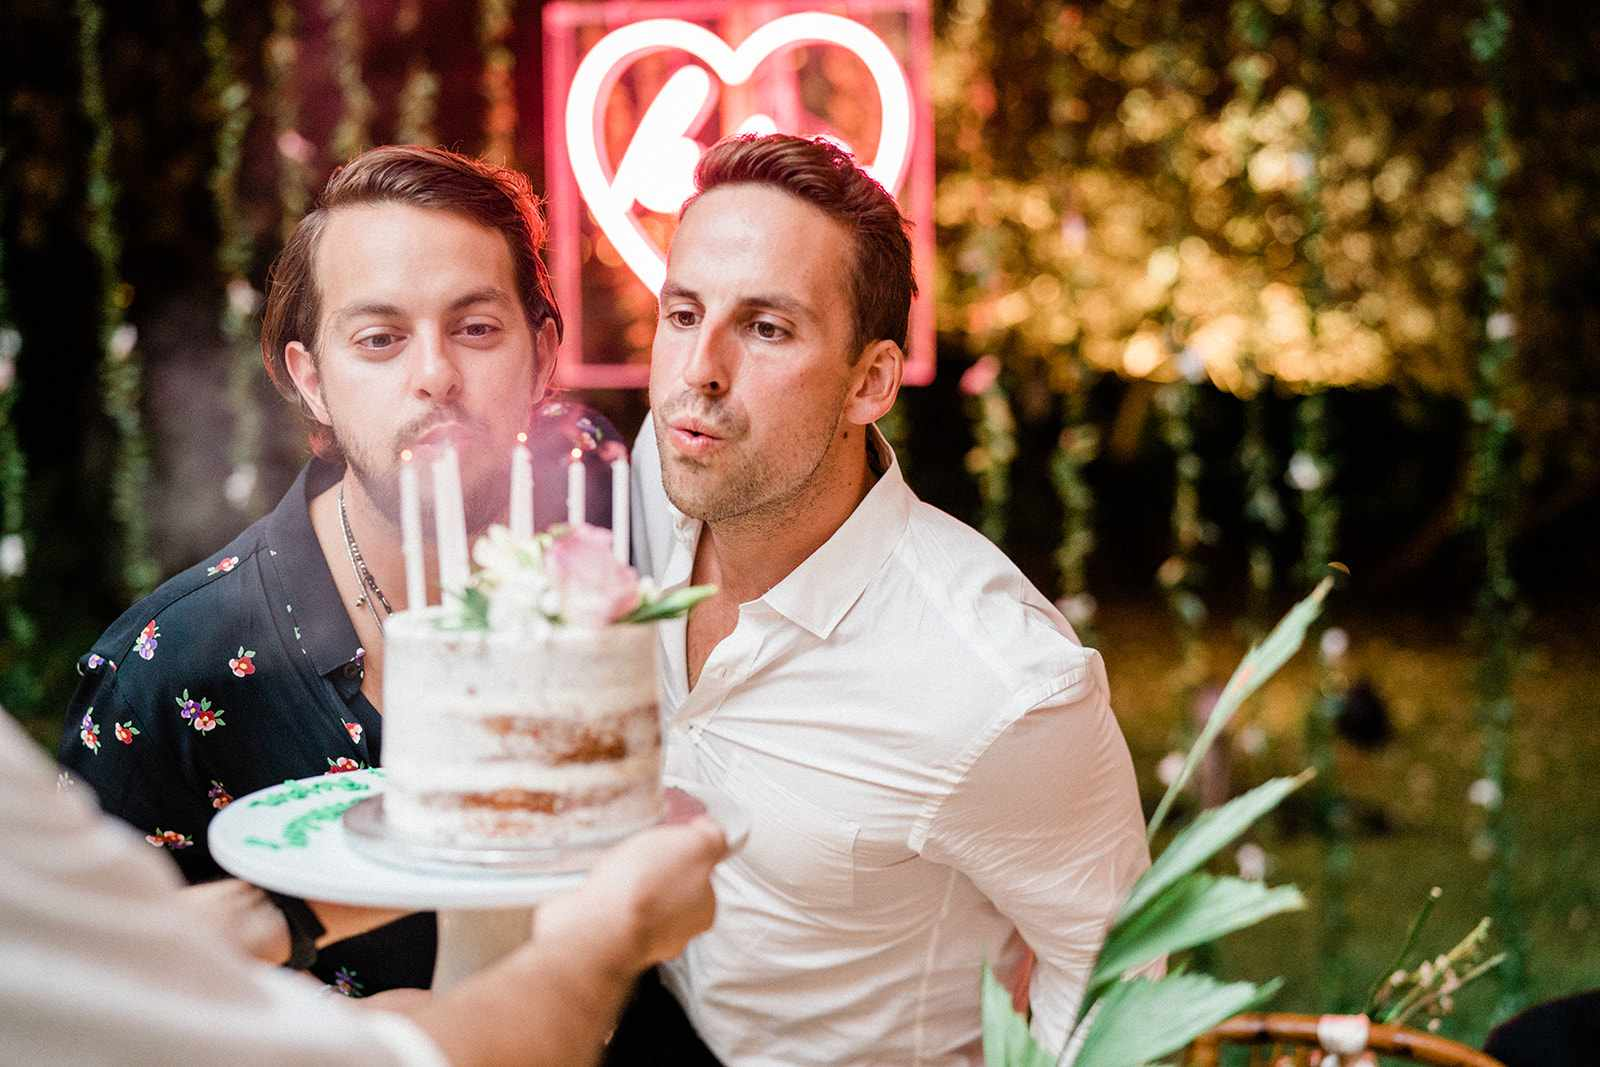 men blowing out birthday candles